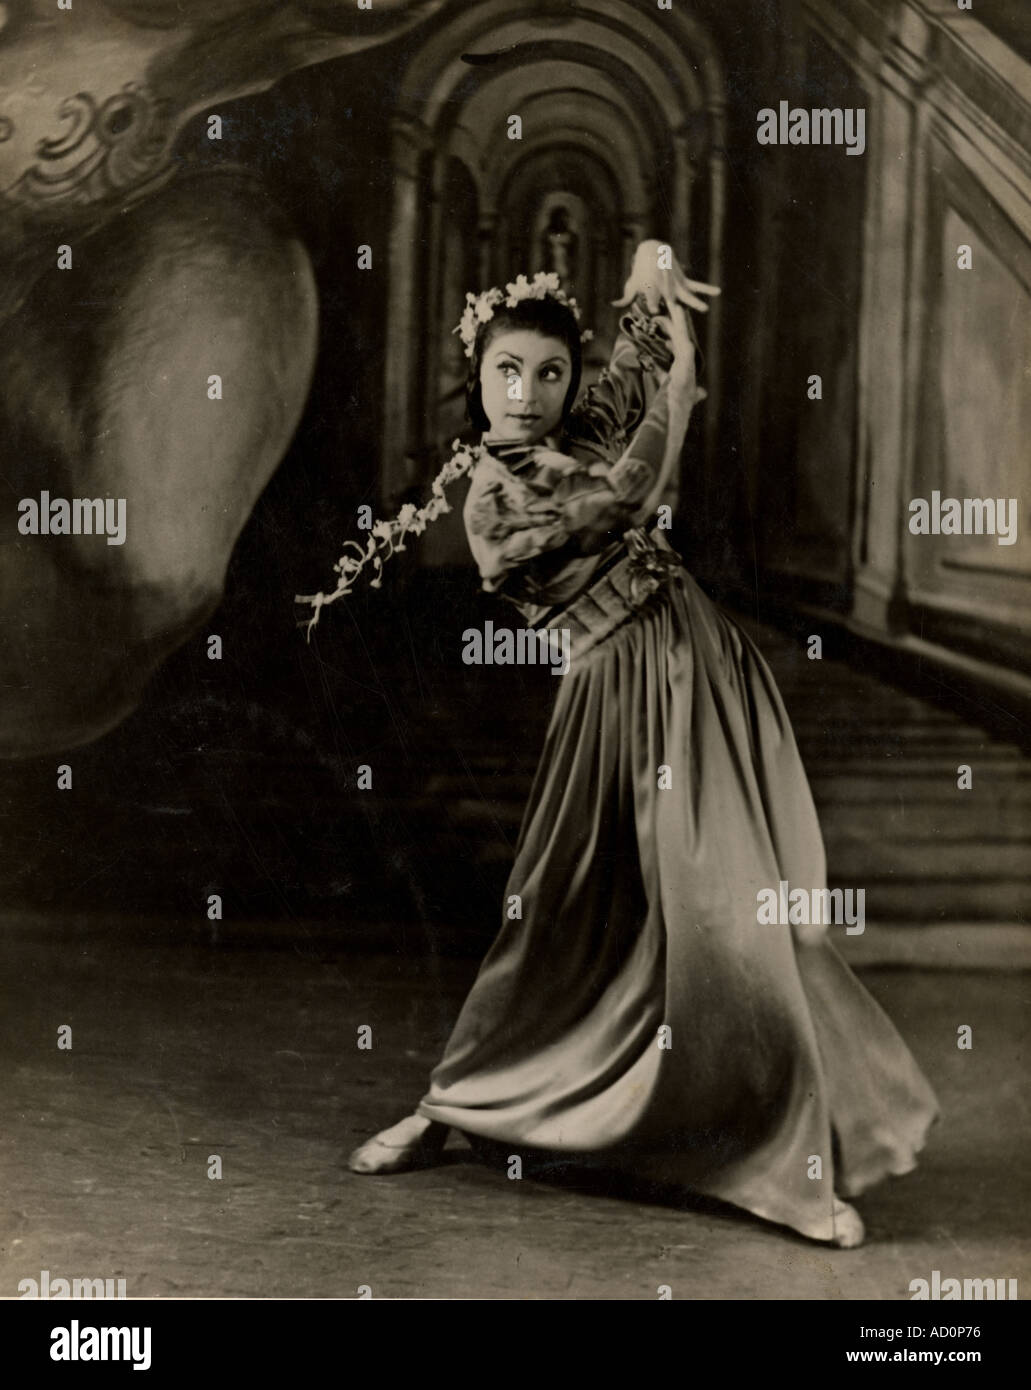 Margot Fonteyn as Ophelia. Photo by Gordon Anthony. London, England, 1942. - Stock Image